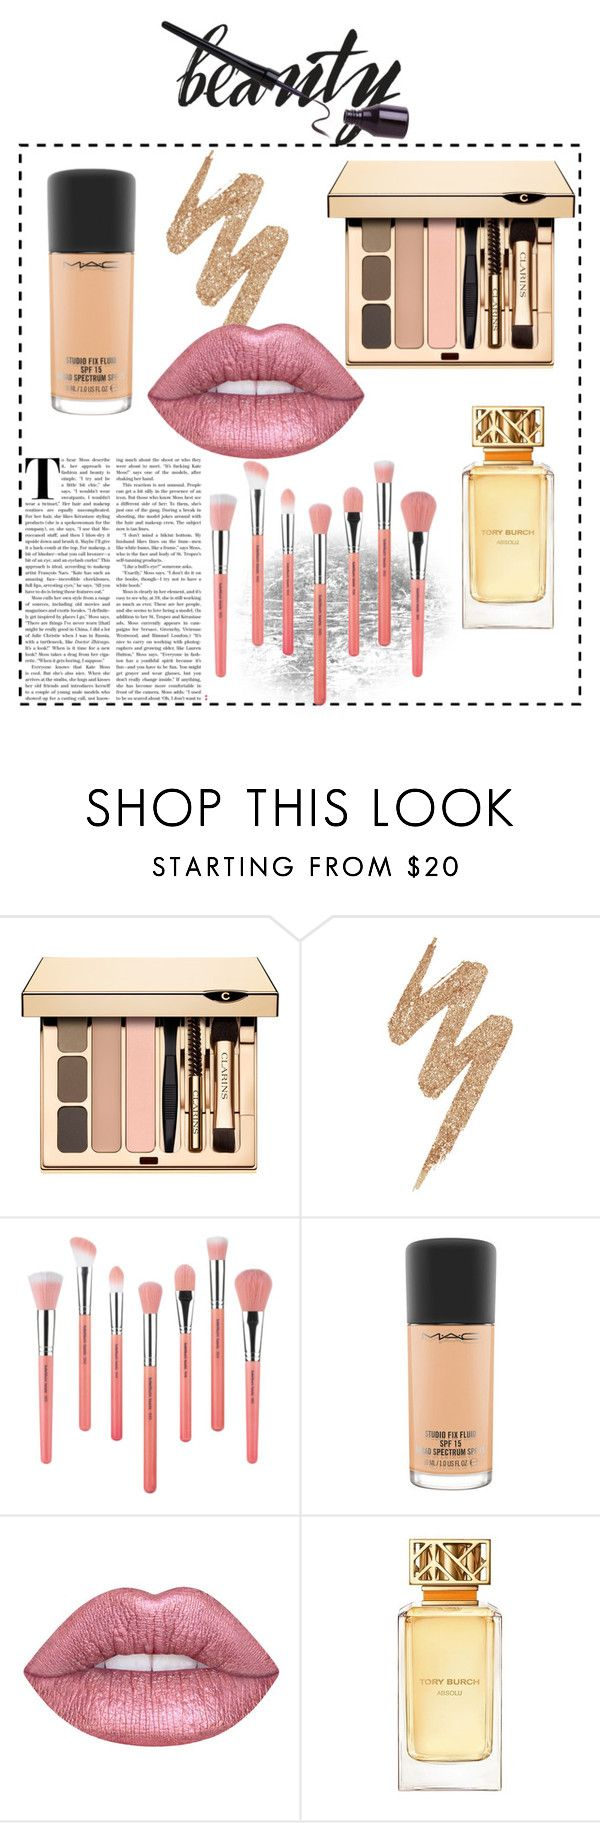 """beauty essentials"" by edithhlatshwayo on Polyvore featuring beauty, Urban Decay, Bdellium Tools, MAC Cosmetics and Tory Burch"